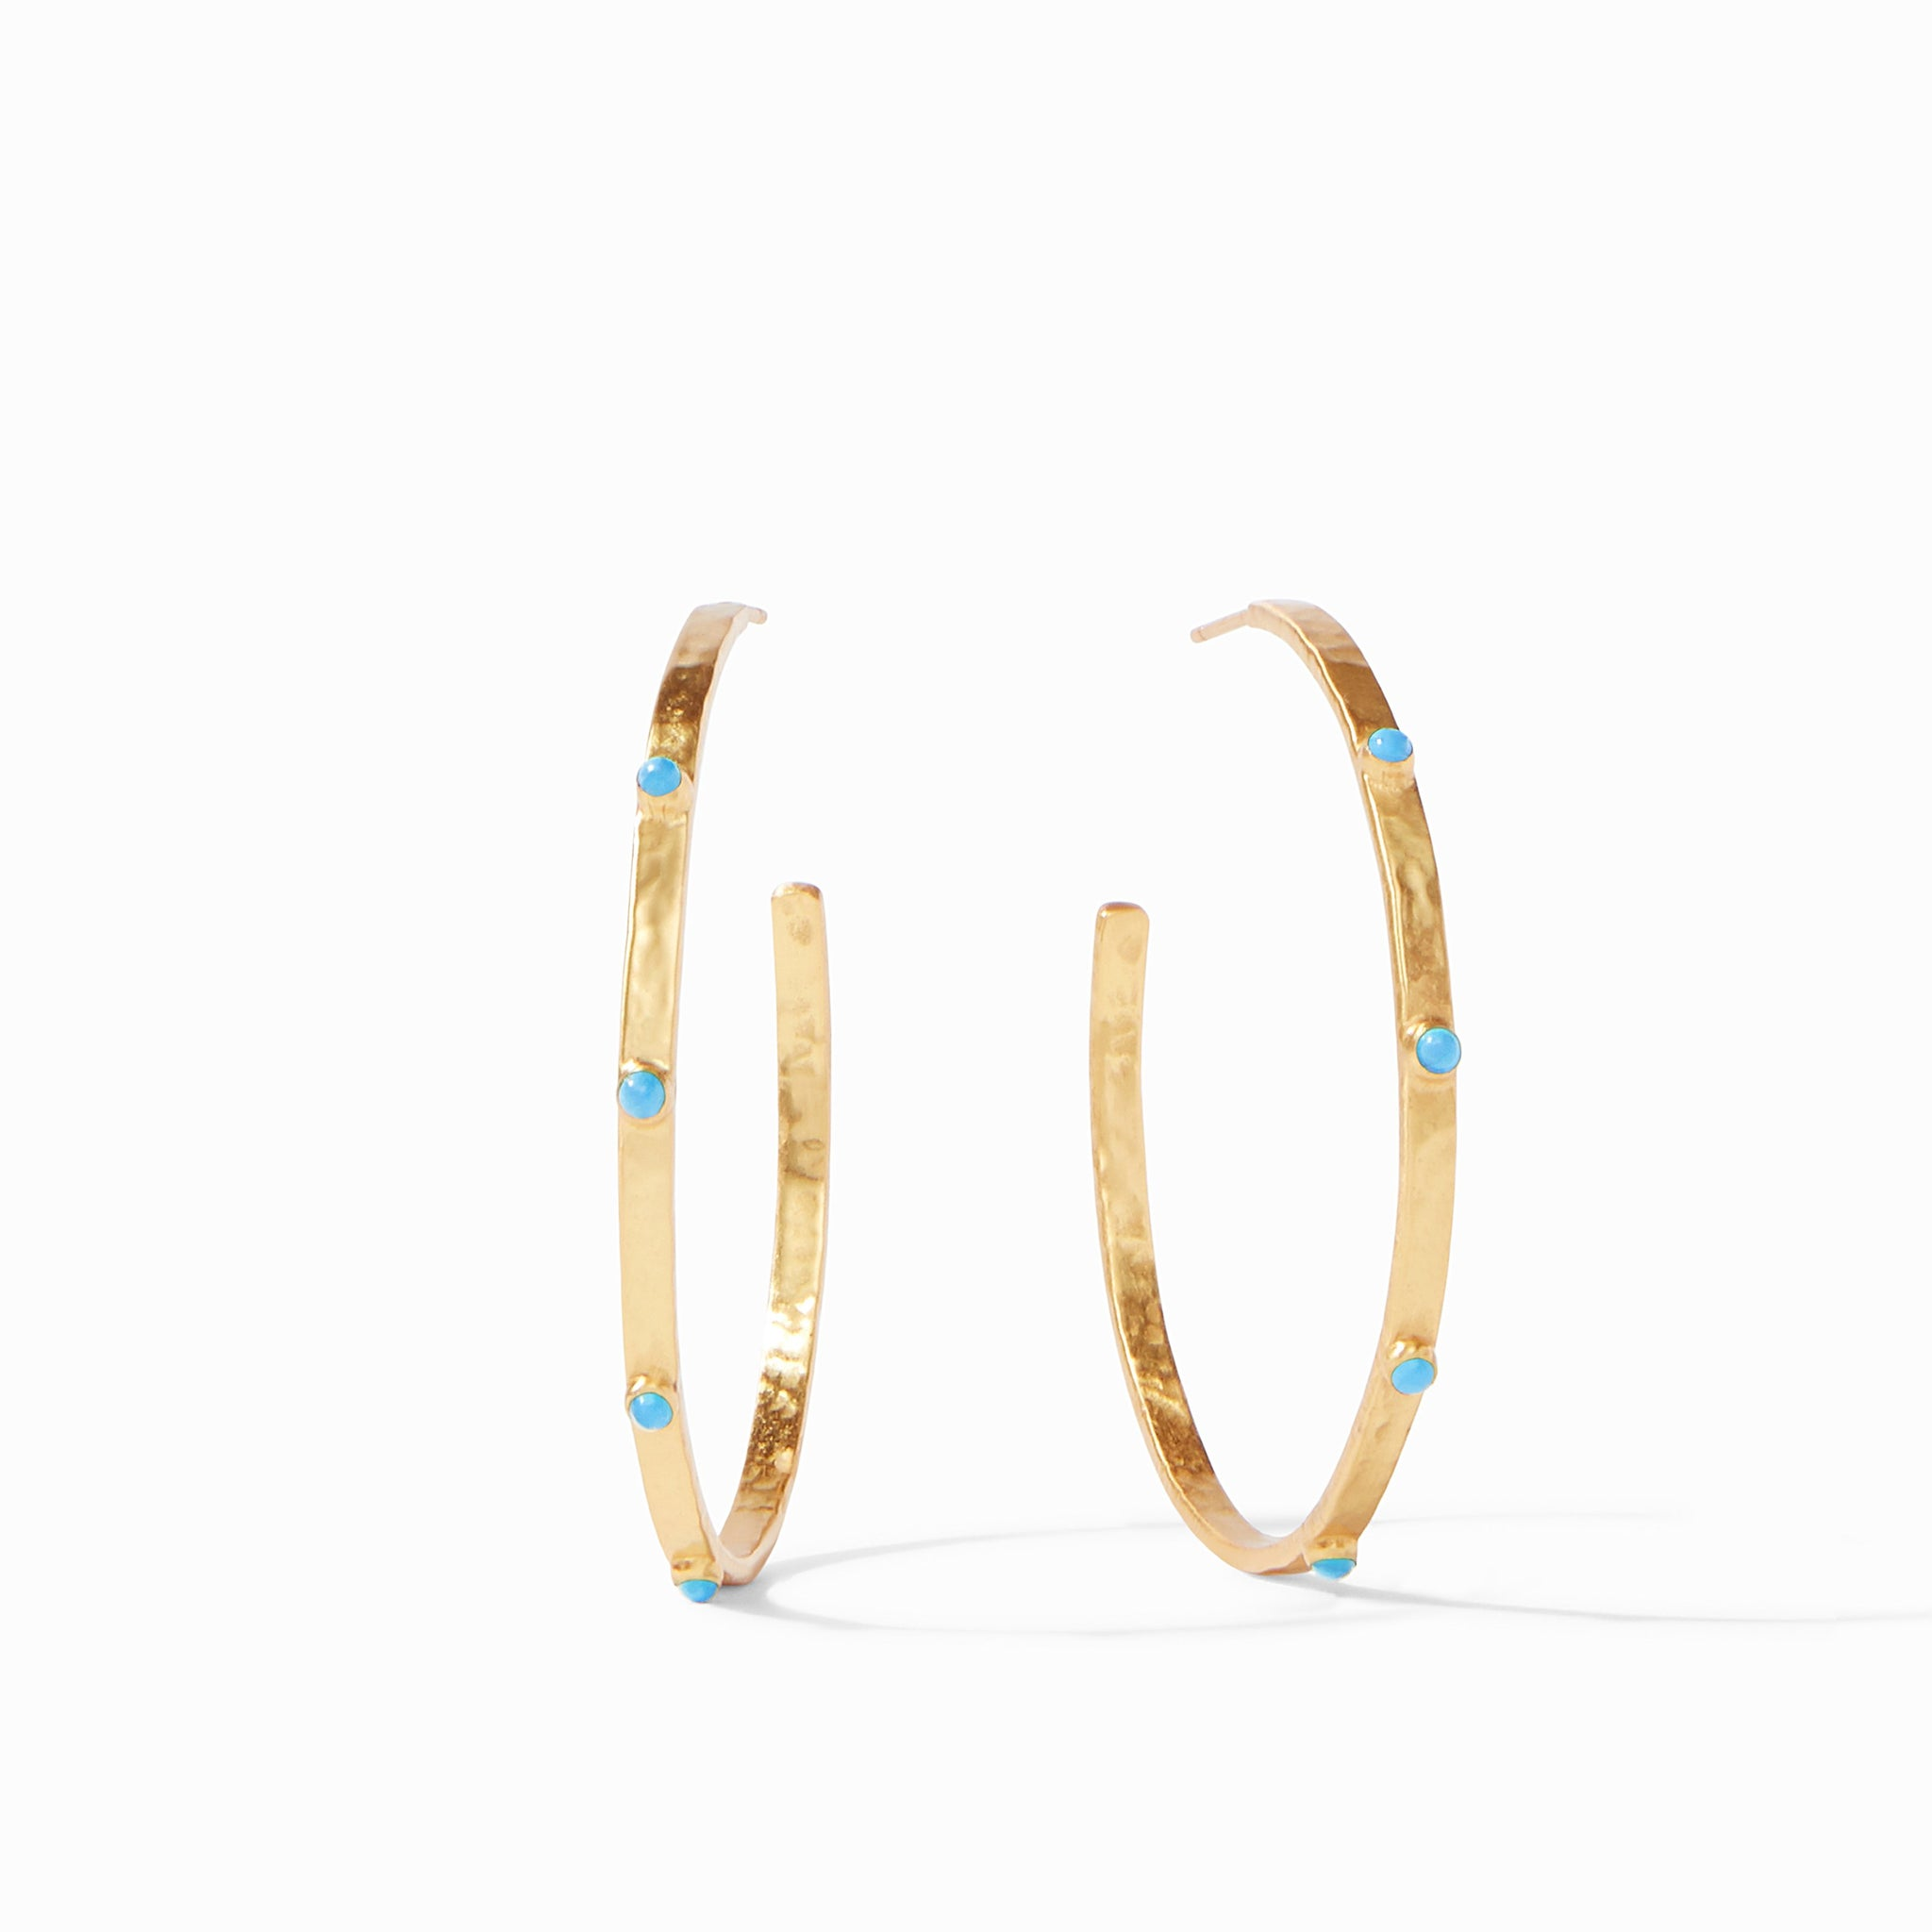 Pacific Blue, L, resort, aspen collection, New Spring Jewels, into the blue, new for spring, into the blues, long weekend look, summertime 2020